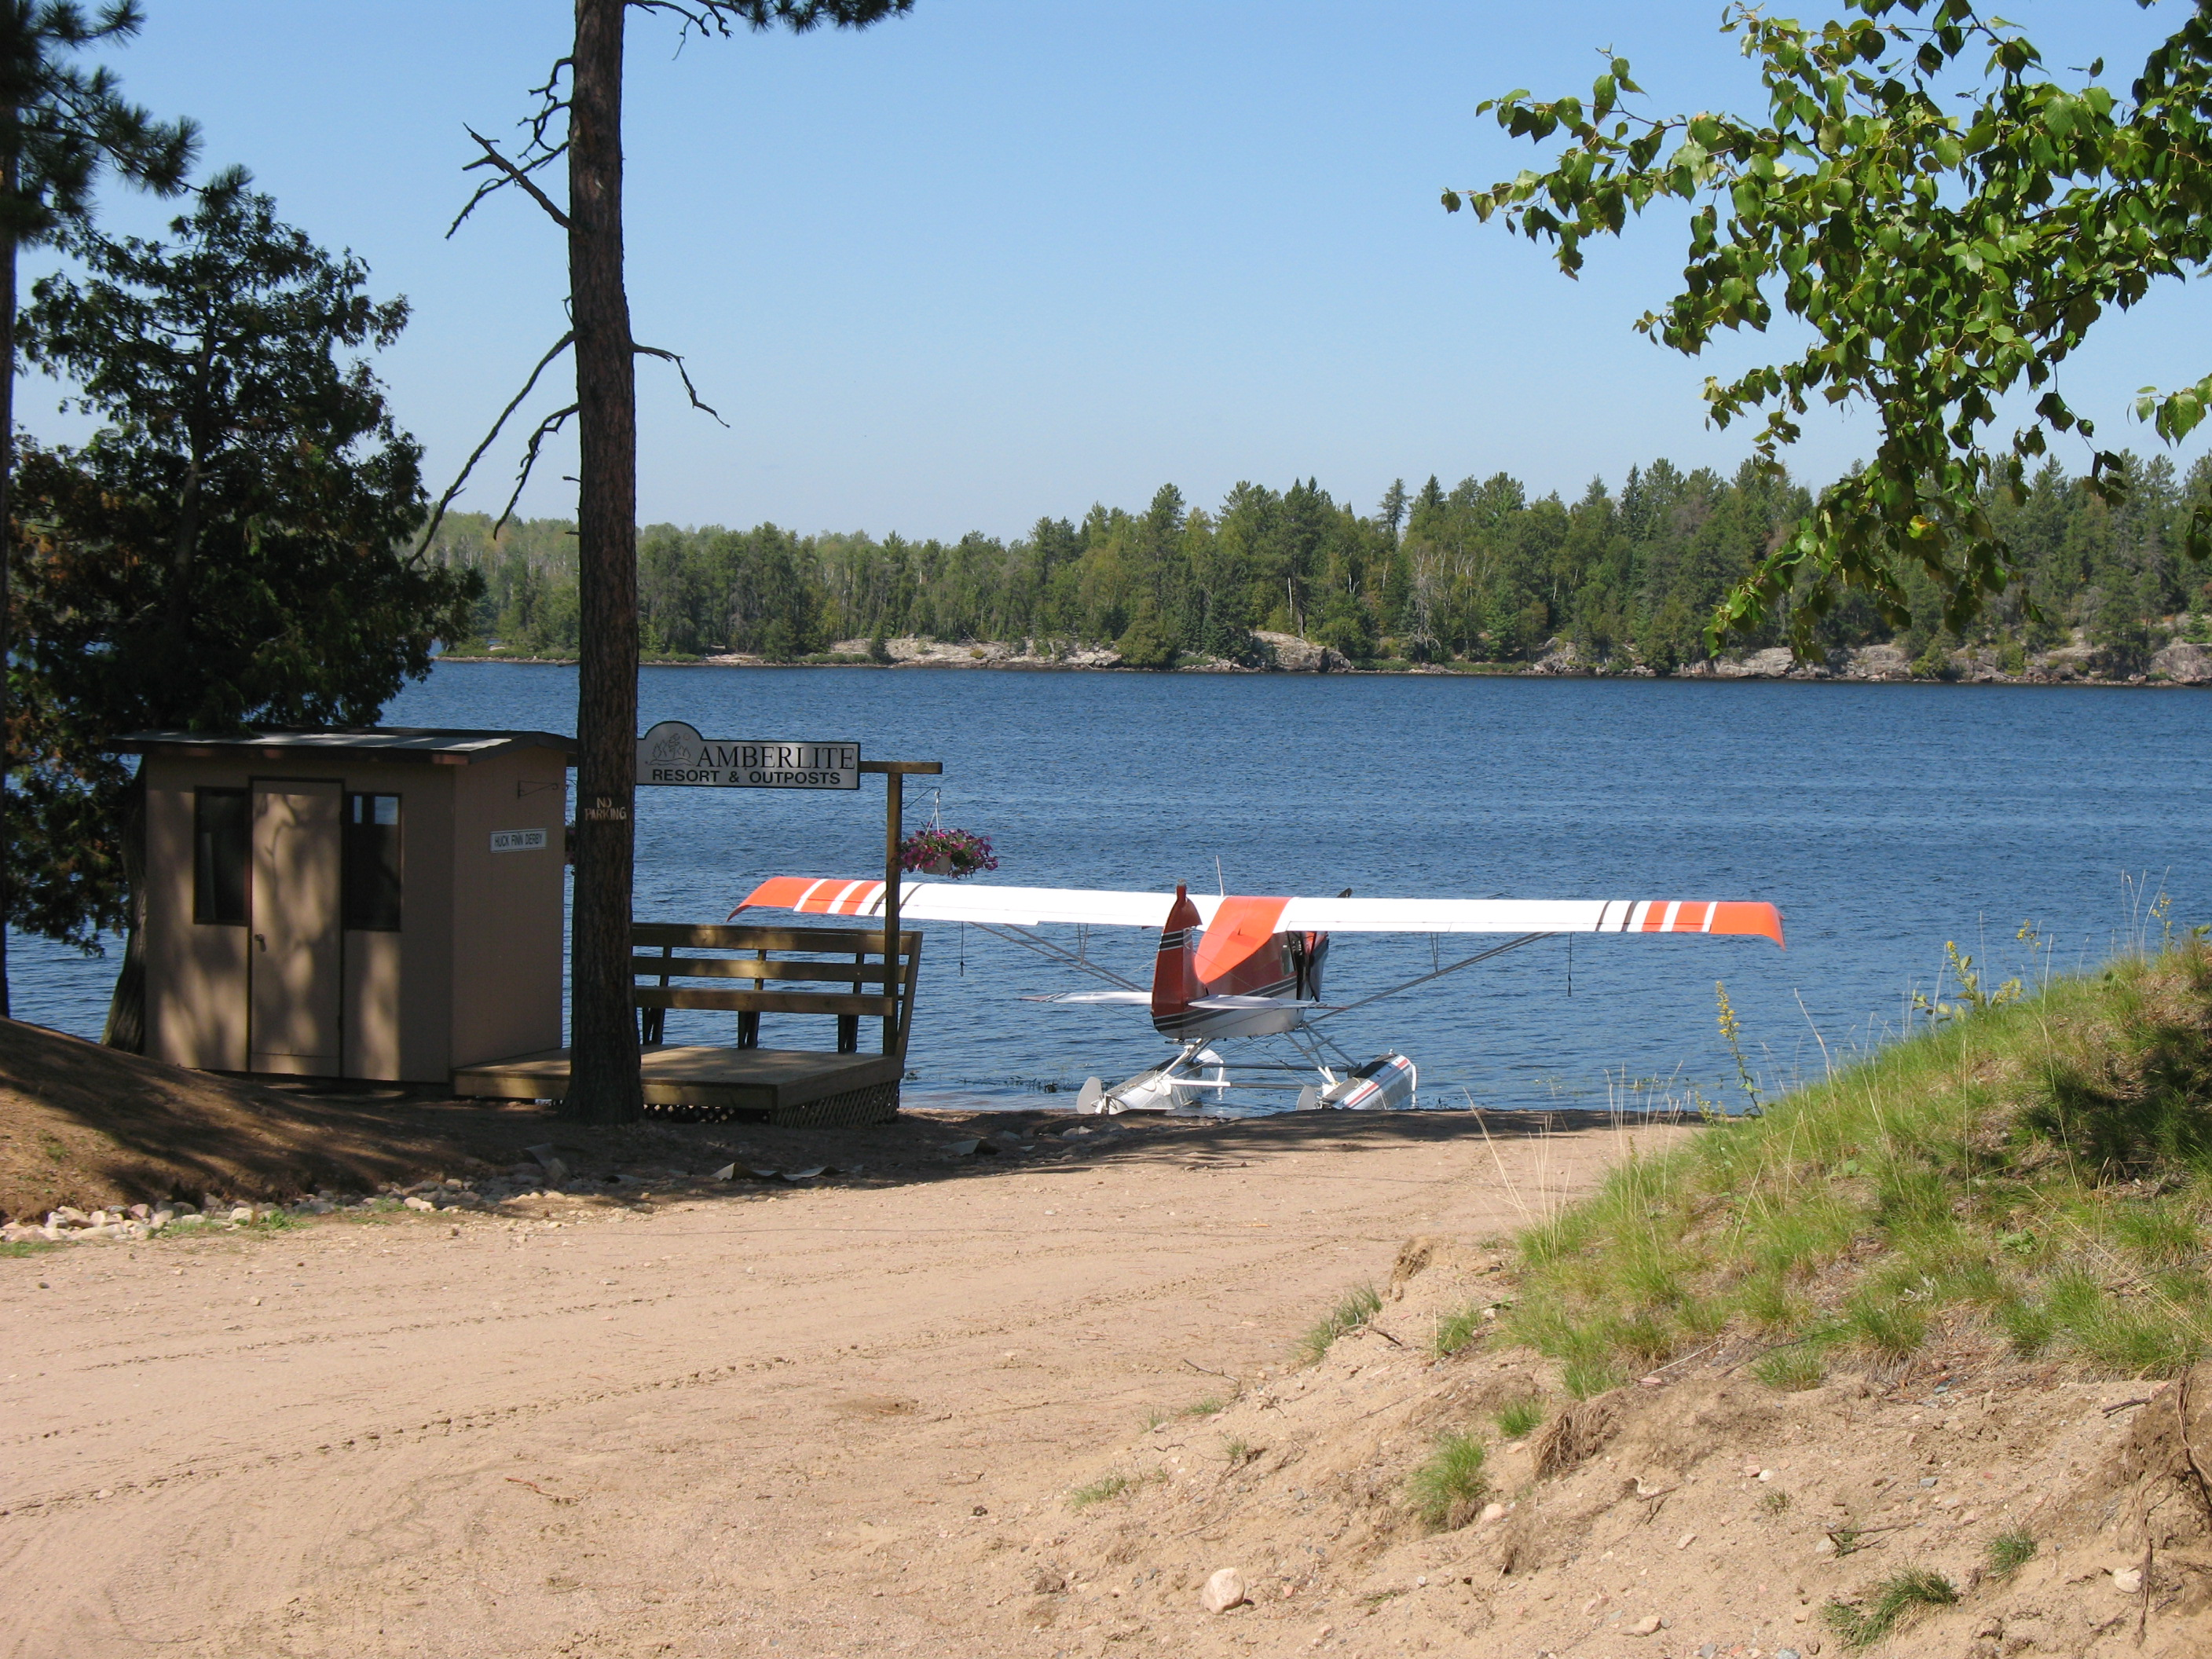 Float Plane at Amberlite